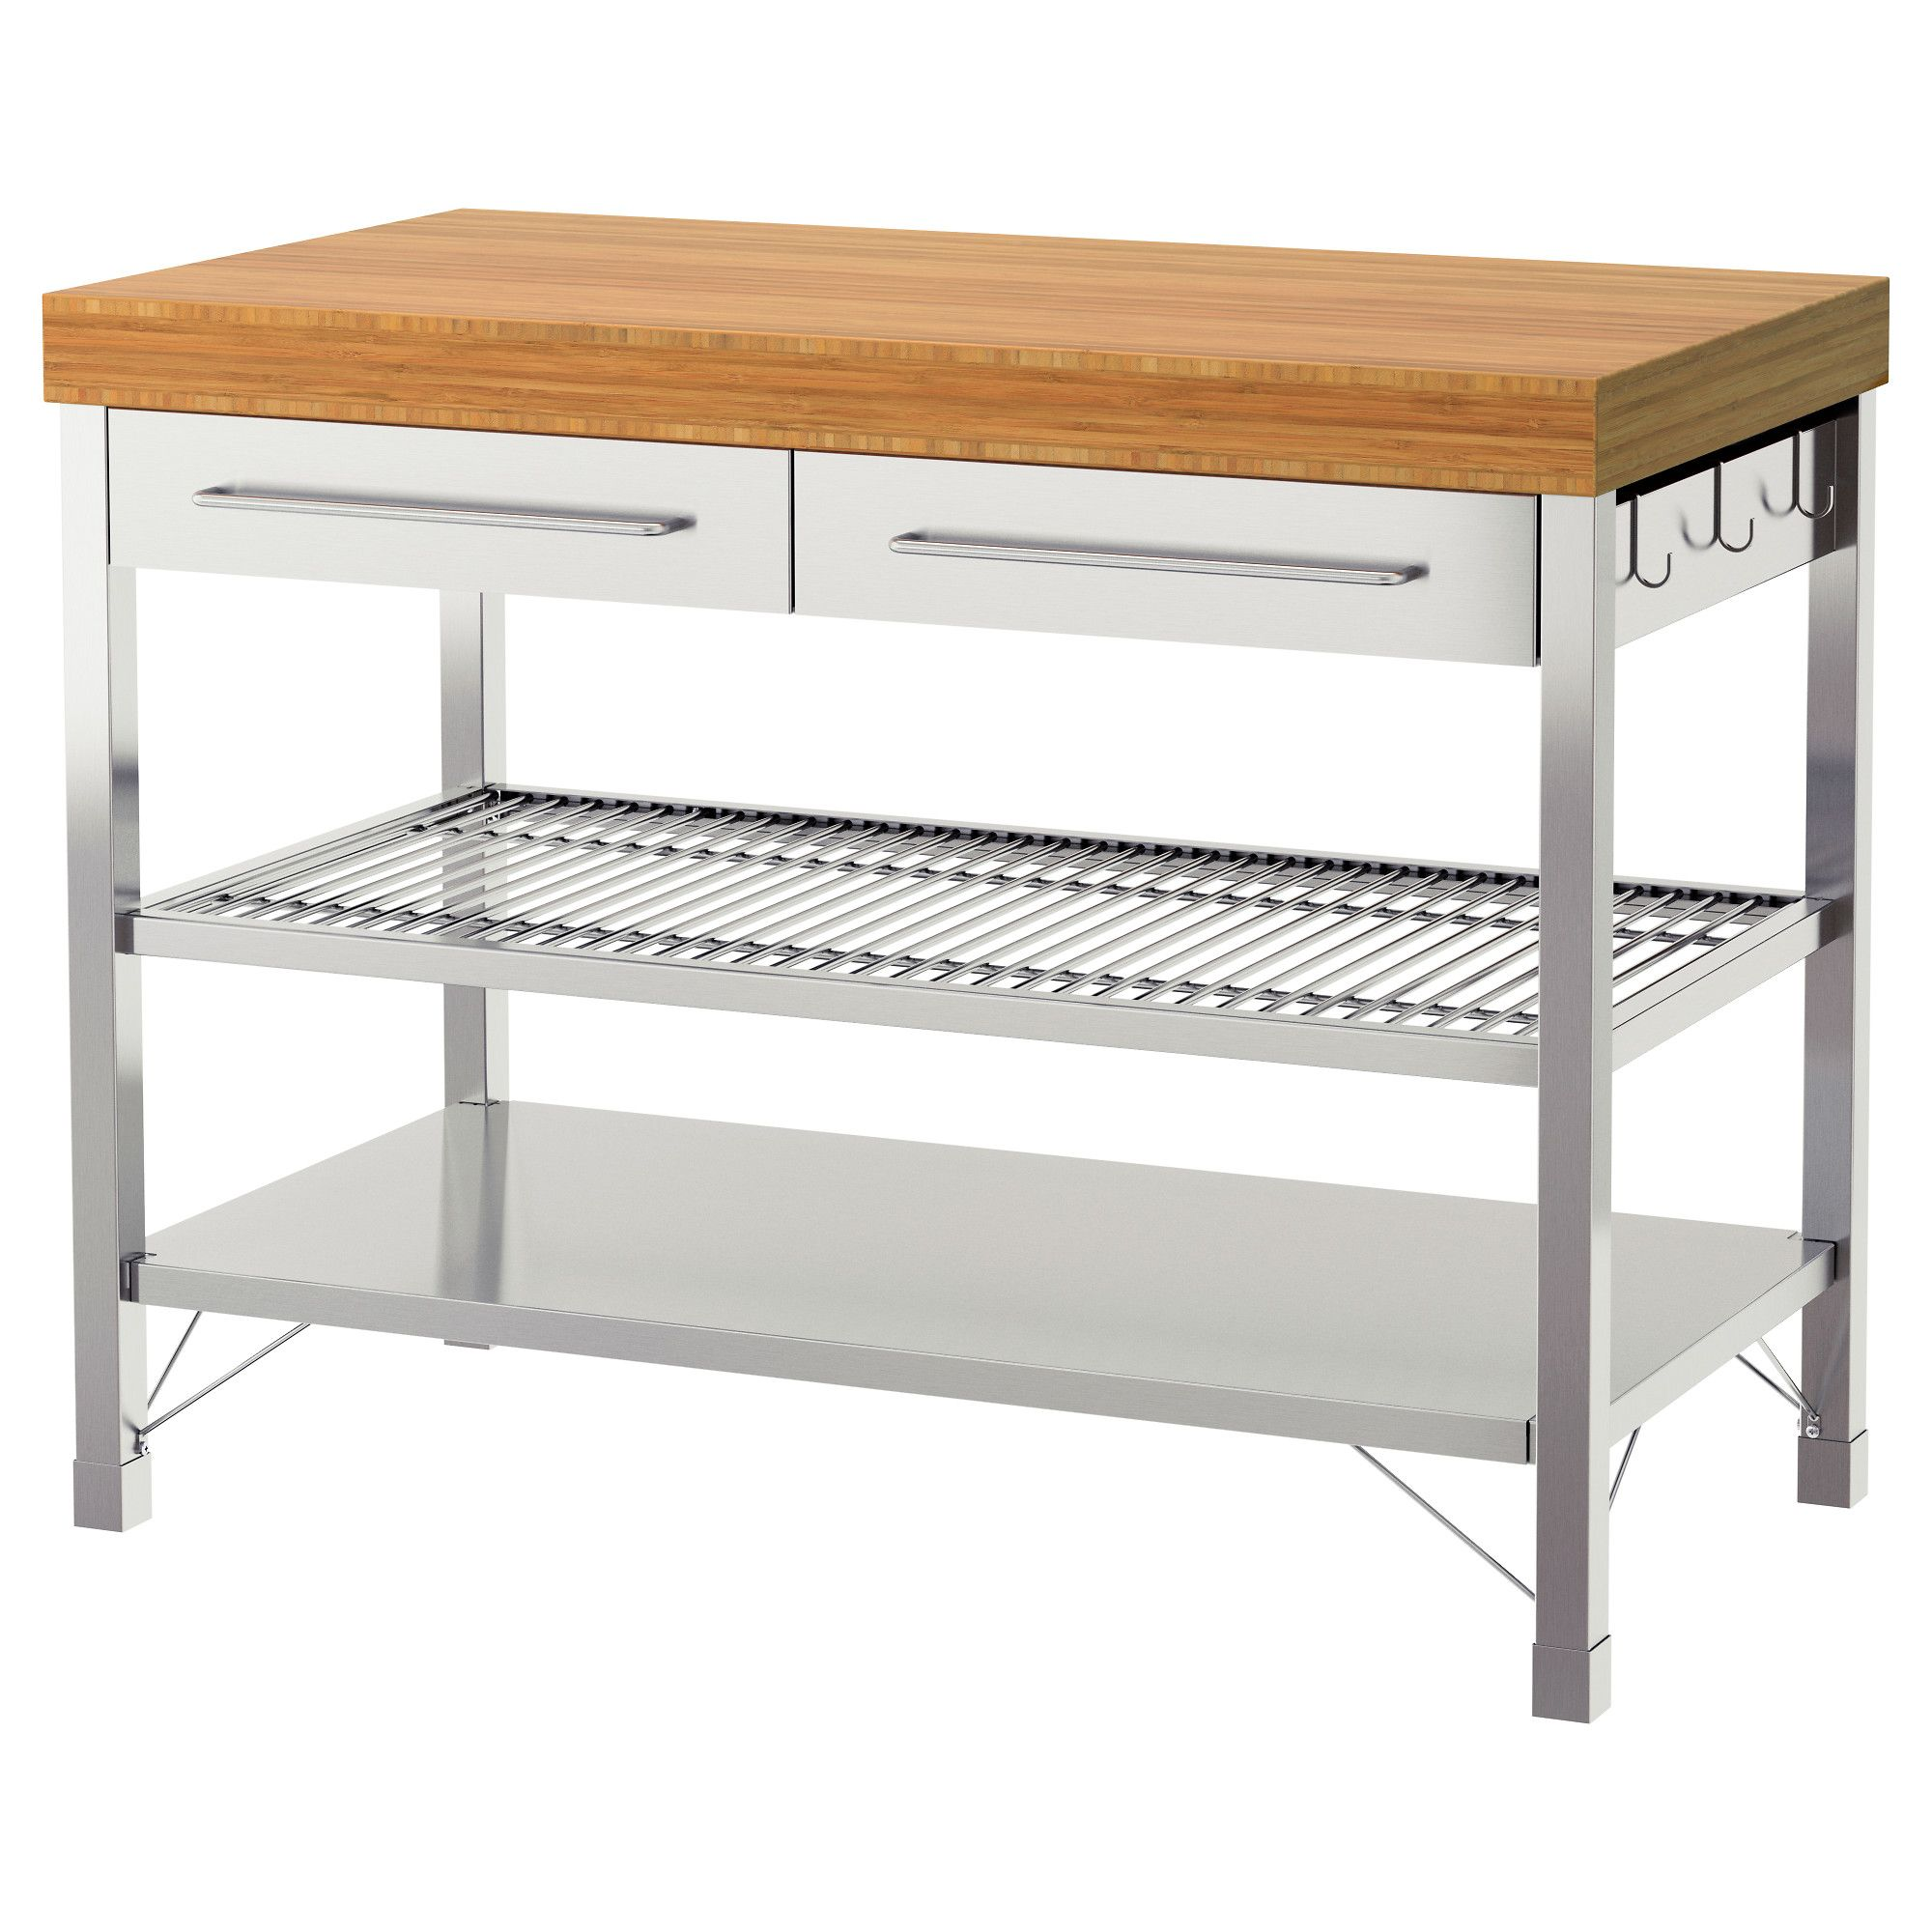 Ikea Küche Werkbank Rimforsa Work Bench Stainless Steel Color Stainless Steel Bamboo